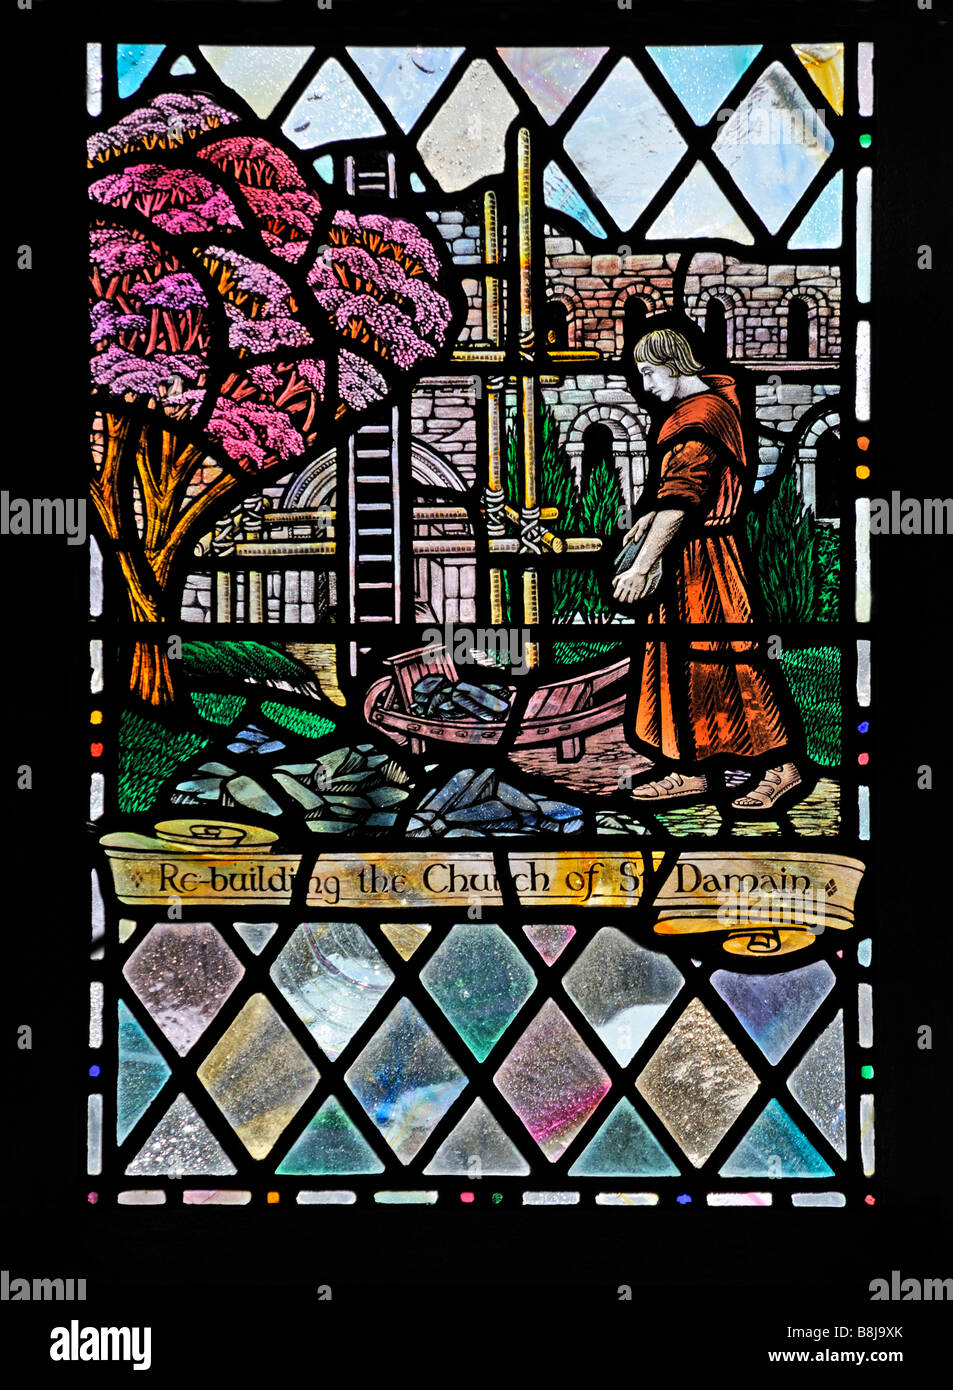 Re-building the Church of St. Damian, Saint Francis window, (detail). Holy Trinity Church, Chapel Stile, Langdale. - Stock Image